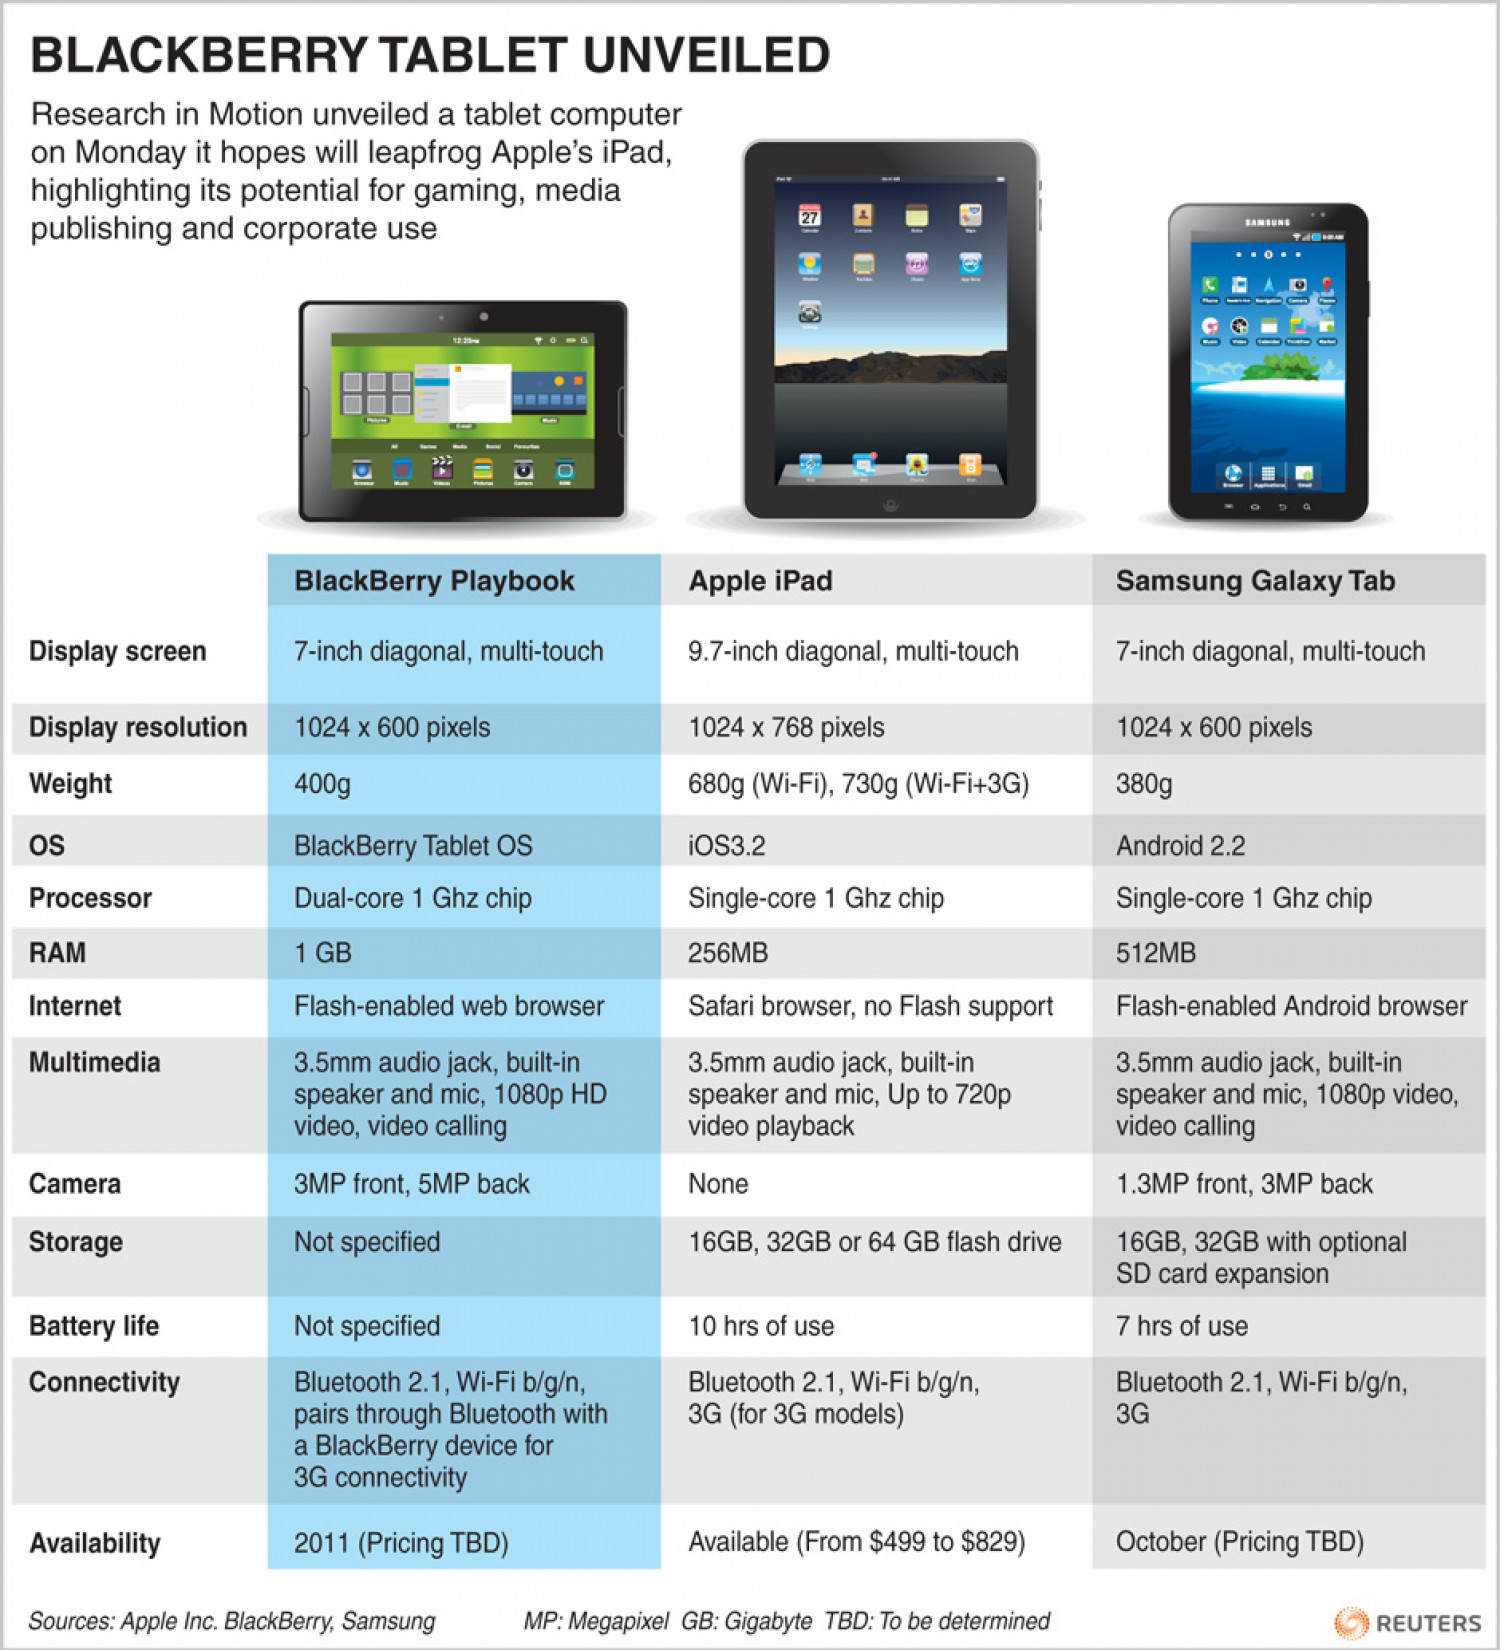 Blackberry Tablet Unveiled Infographic